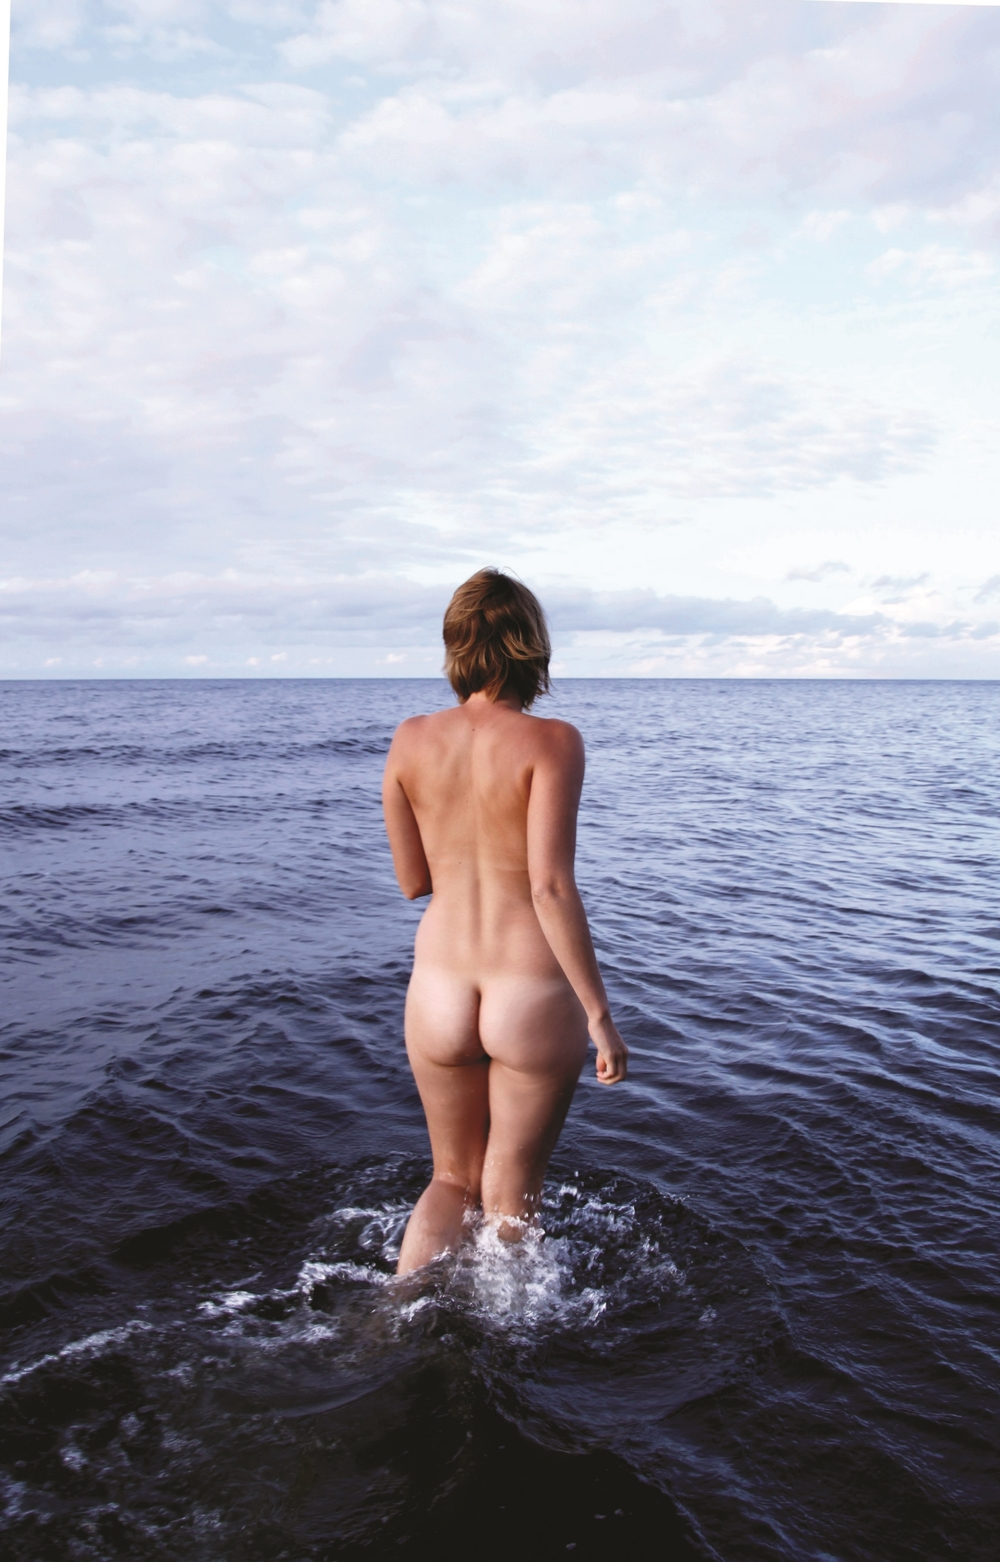 Photographed by Lisa Wassman, shot on the island of Usedom, in the Baltic Sea, on the border between Germany and Poland.